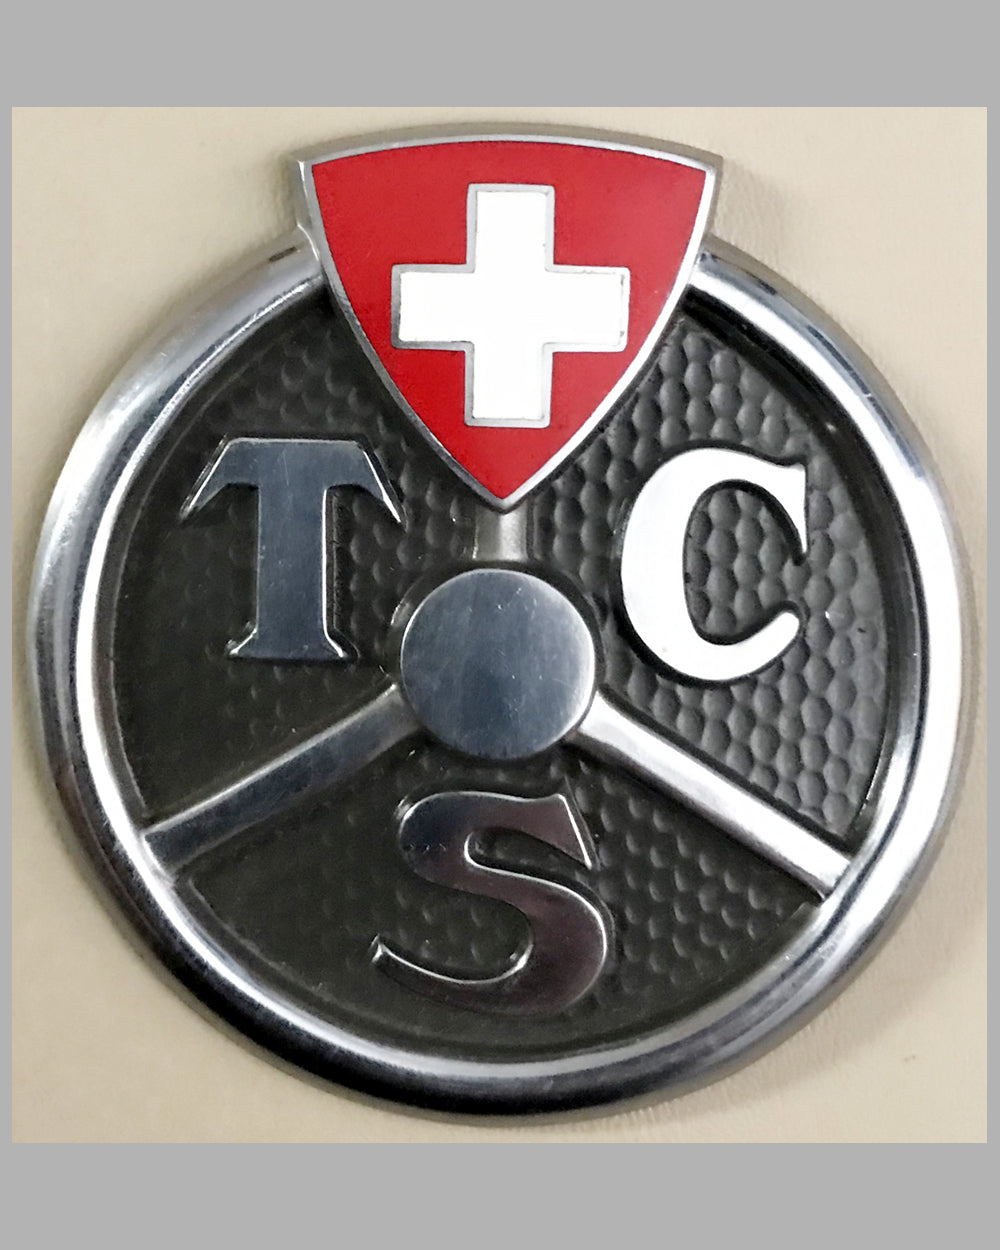 Touring Club of Switzerland car grill badge, 1950's